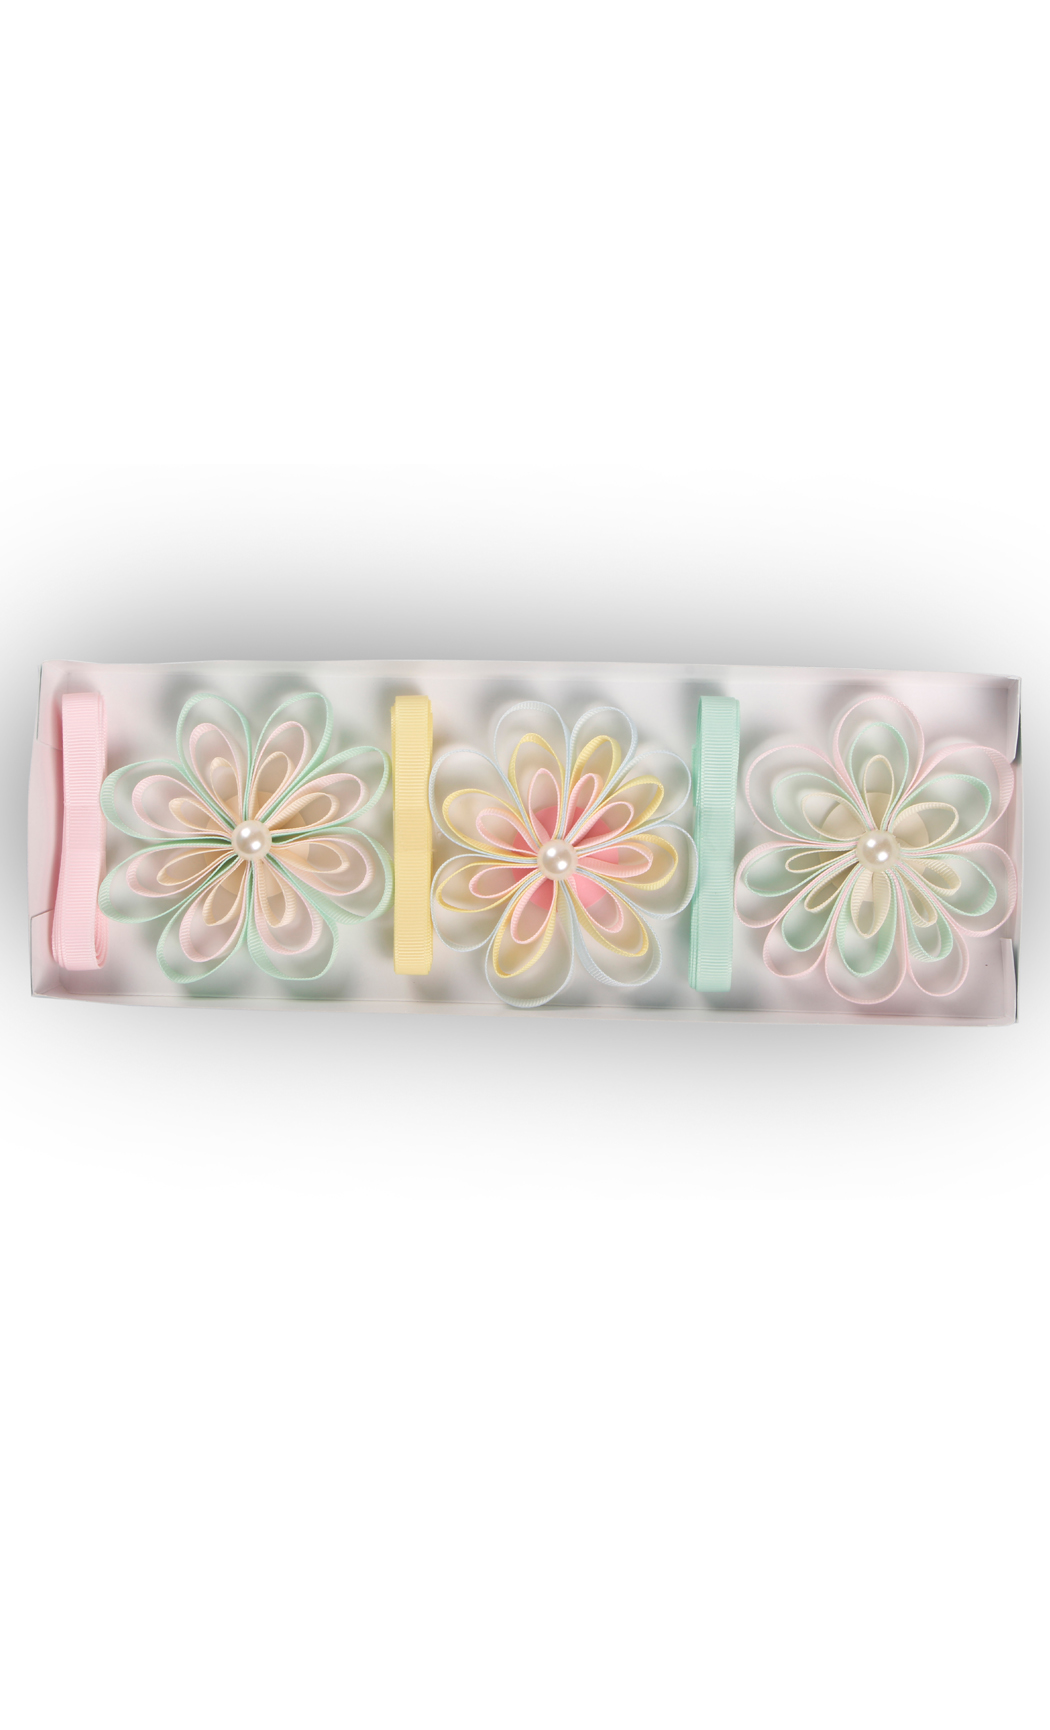 Ready to Stick Grosgrain Pastel Bows (Set of 3) - Buy Online